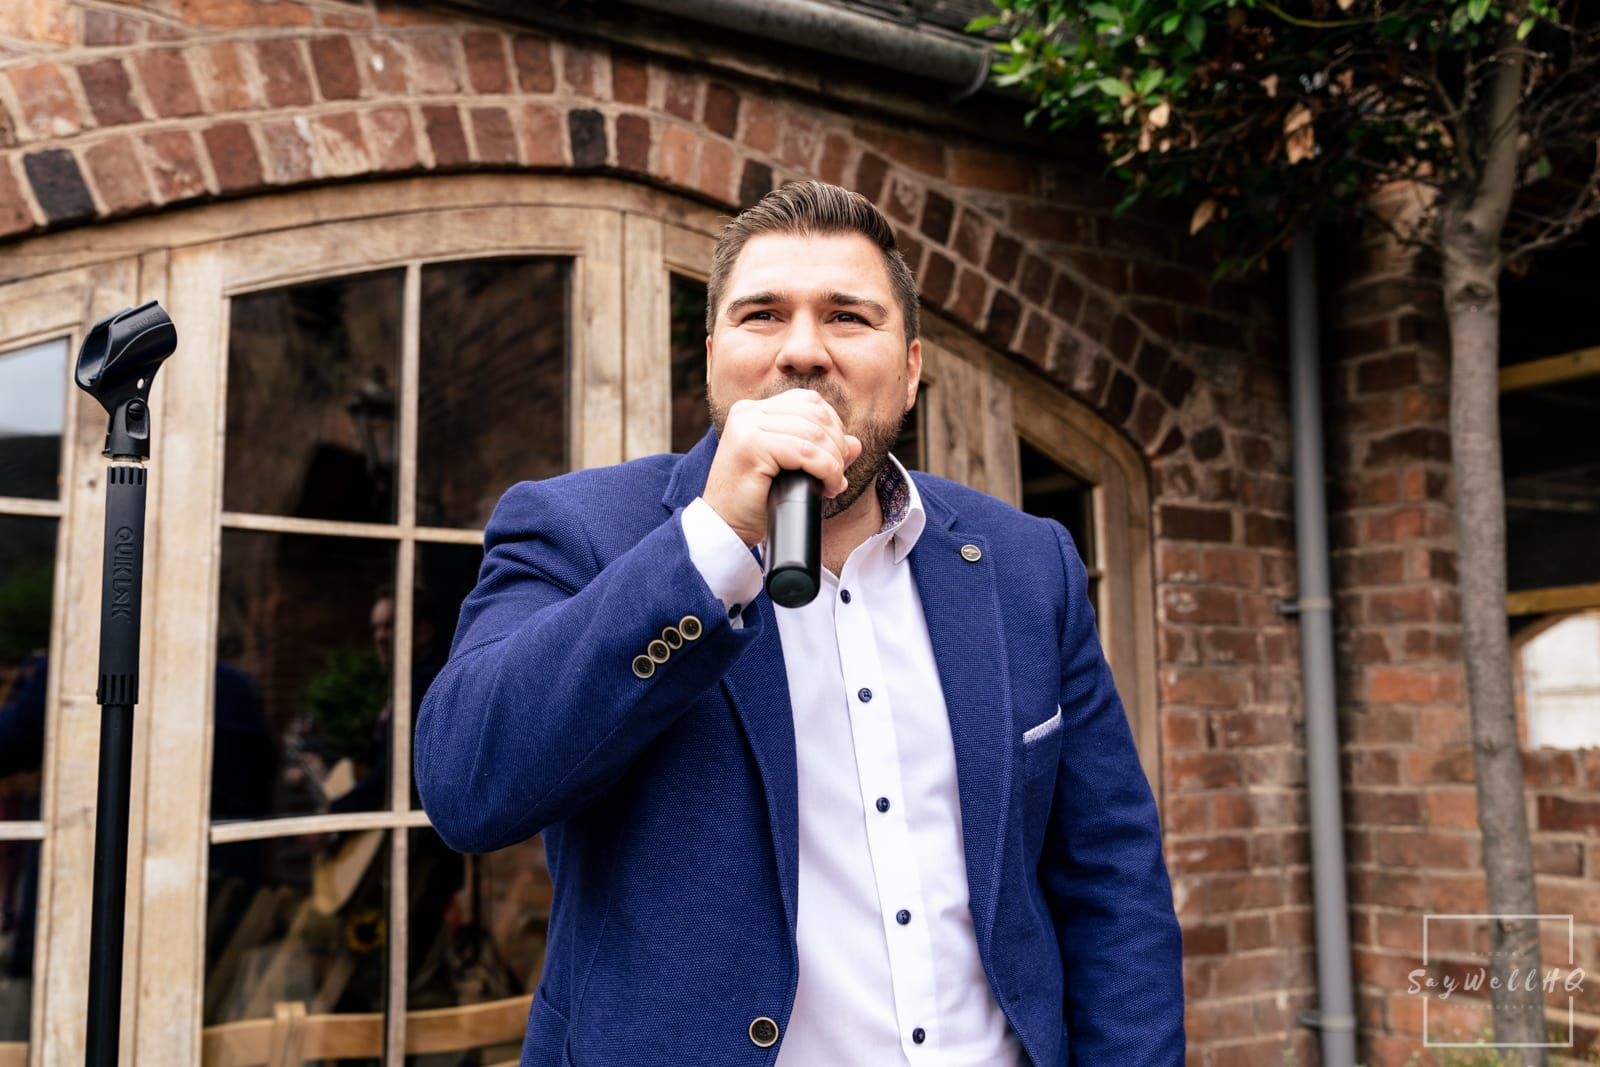 Mapperley Farm Wedding Photography + Mapperley Farm Wedding Photographer + live music is played as wedding guests celebrate in the courtyard after the wedding ceremony in a converted barn